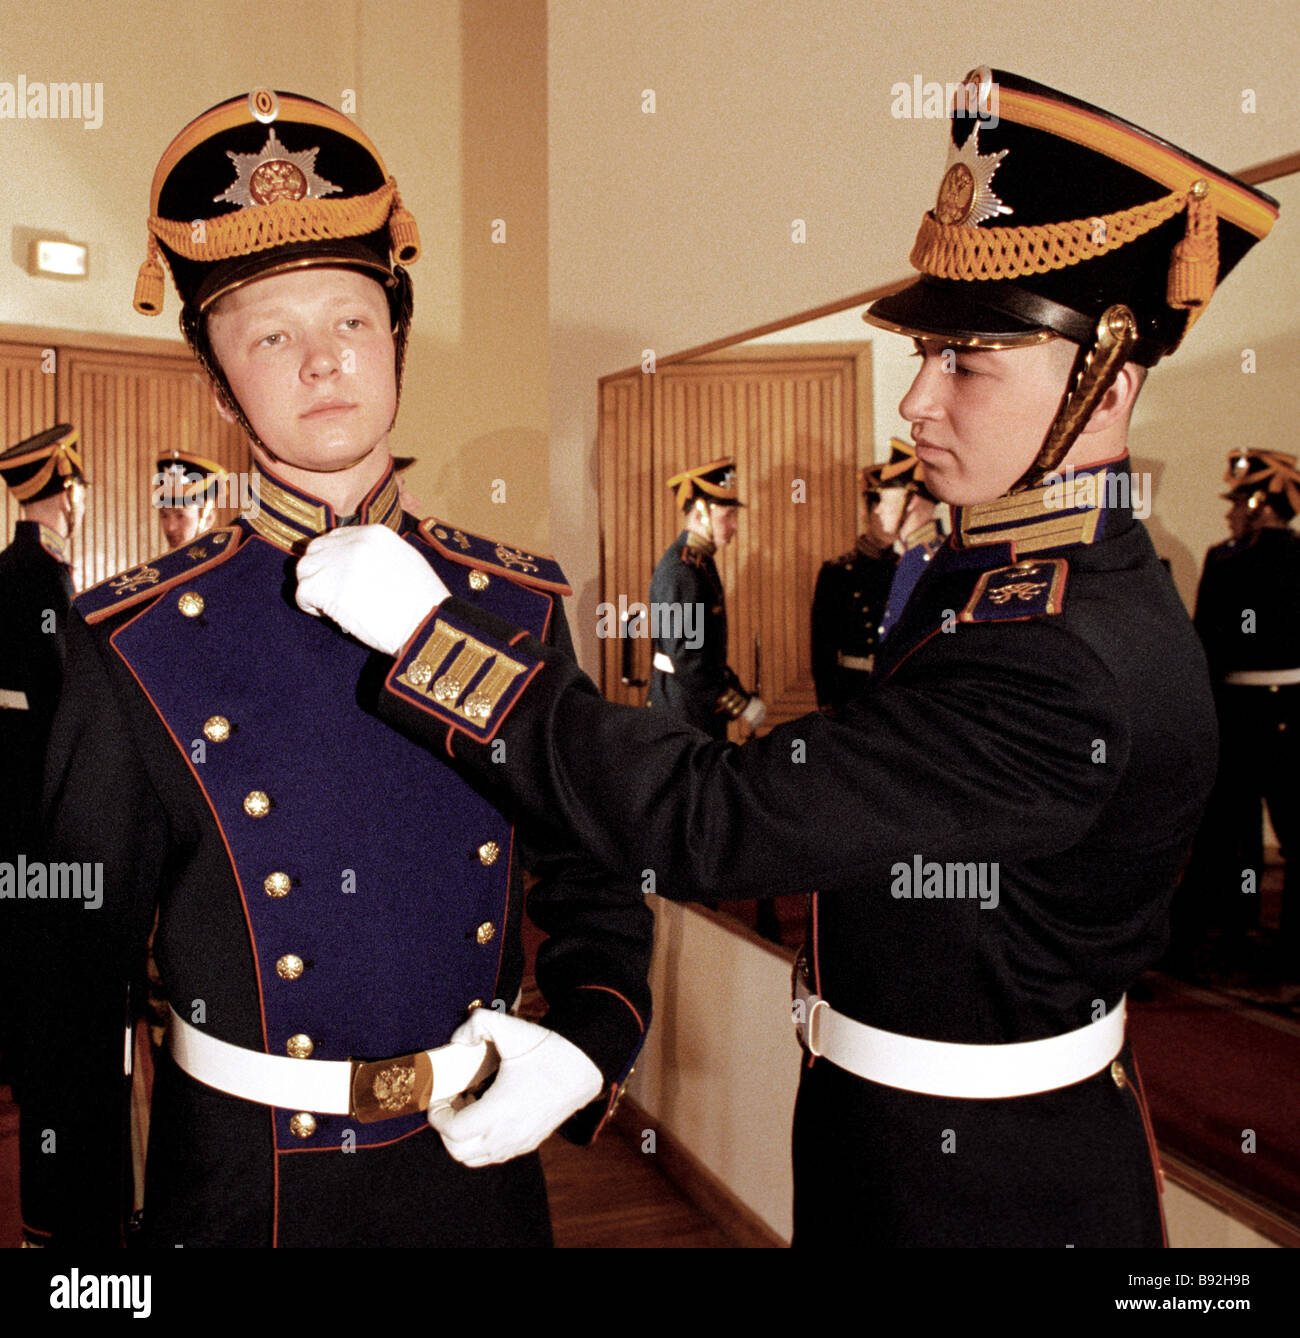 Soldiers of Presidential Regiment before official ceremony - Stock Image